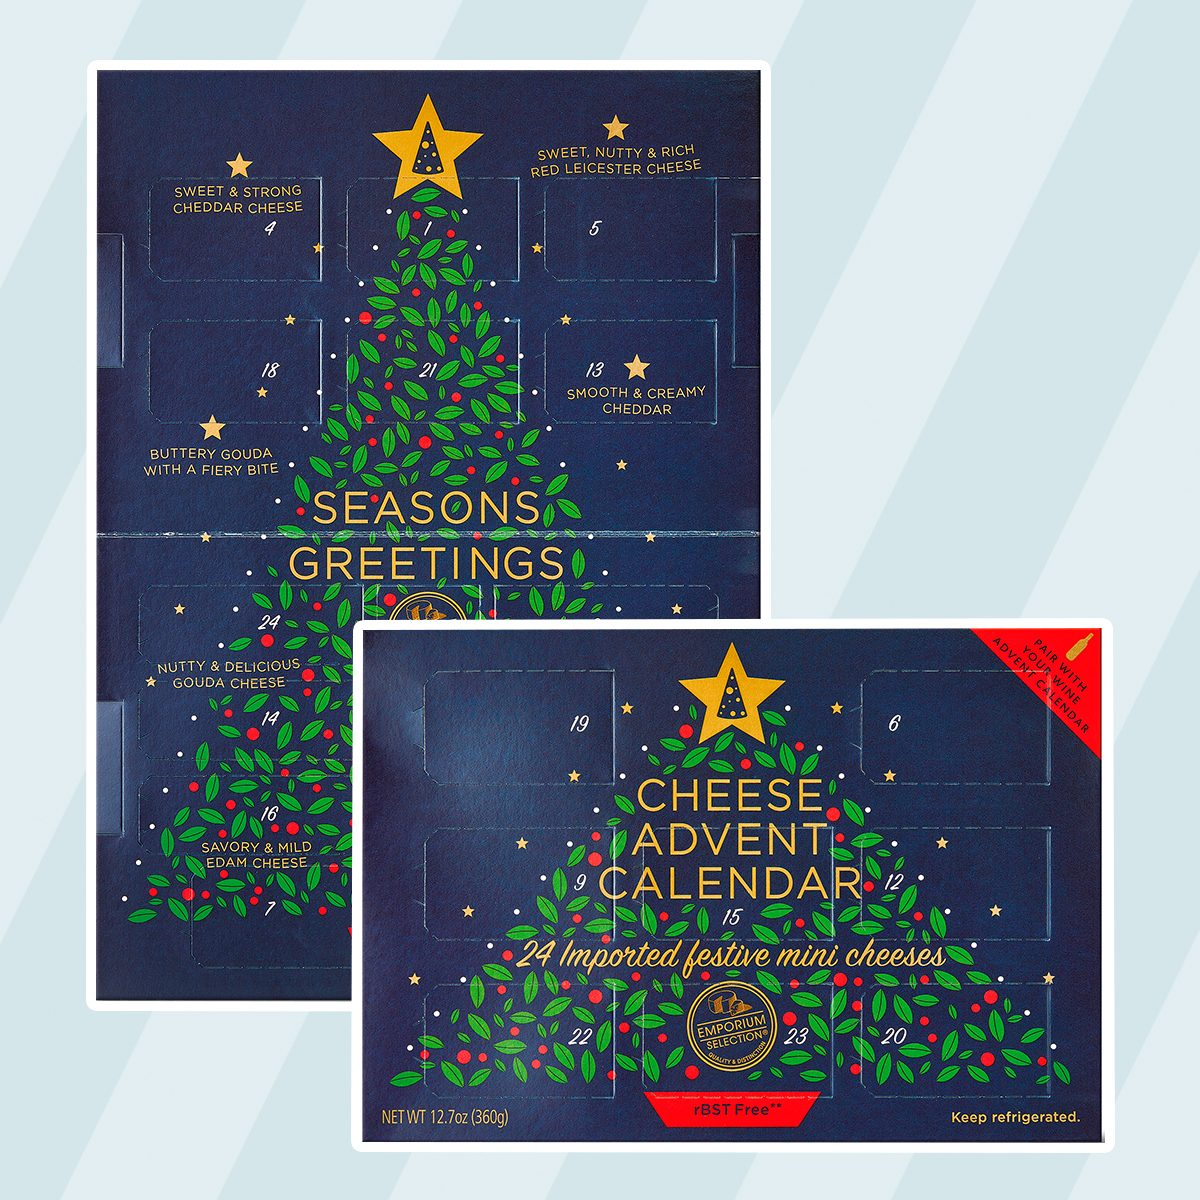 Cheese advent Calendar from Aldi